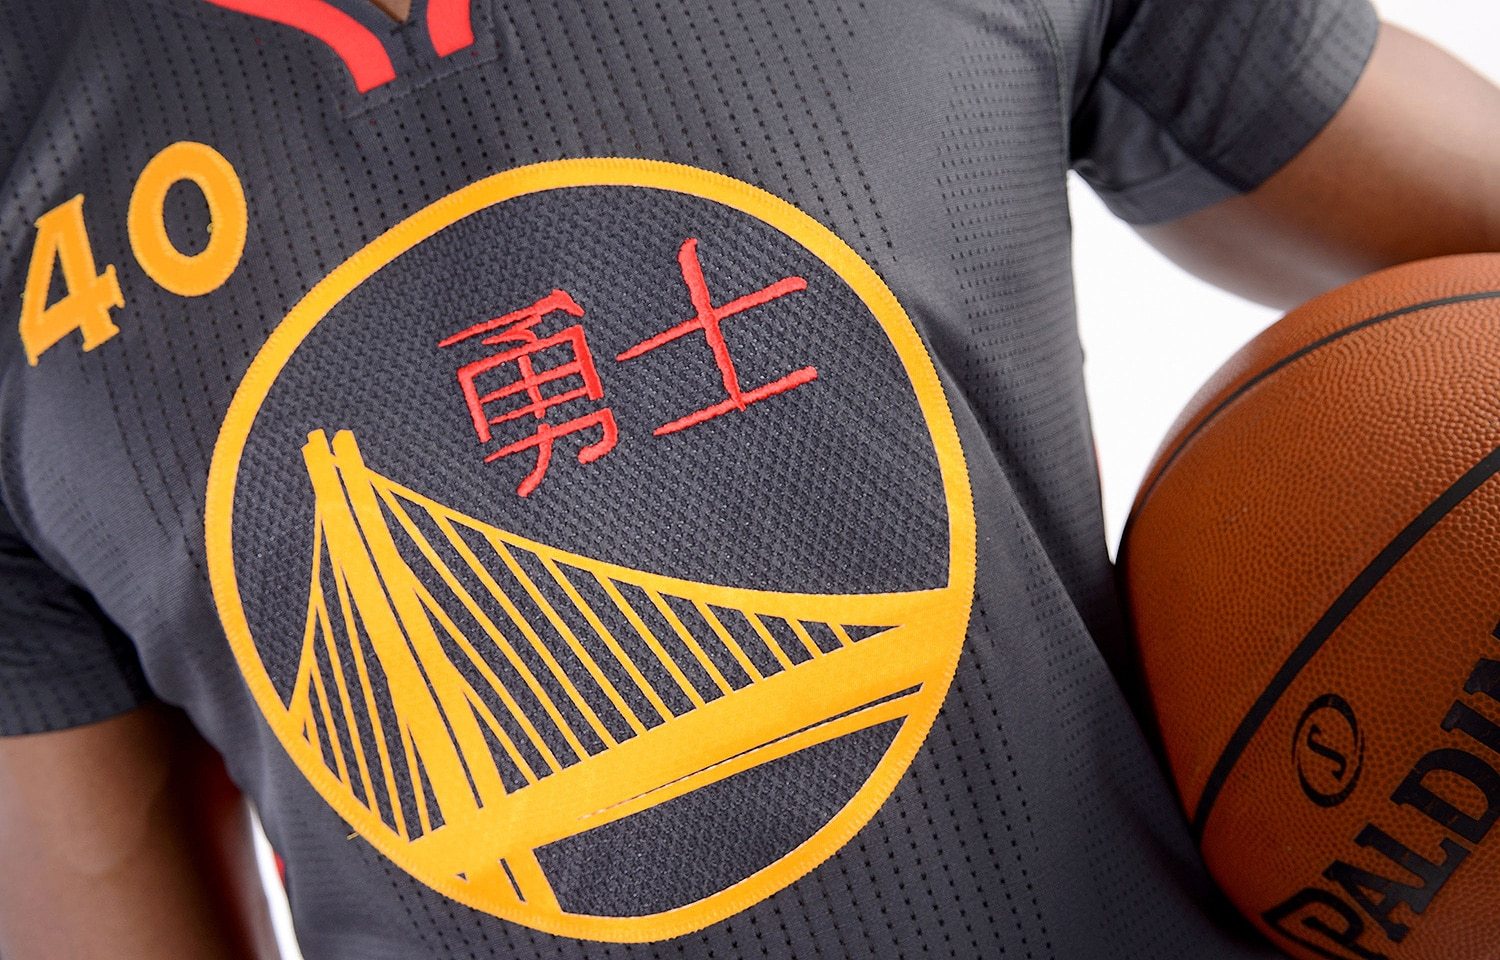 ... 42 patch nbc bay warriors chinese new year uniforms warriors chinese  new year uniforms . 088d24c50